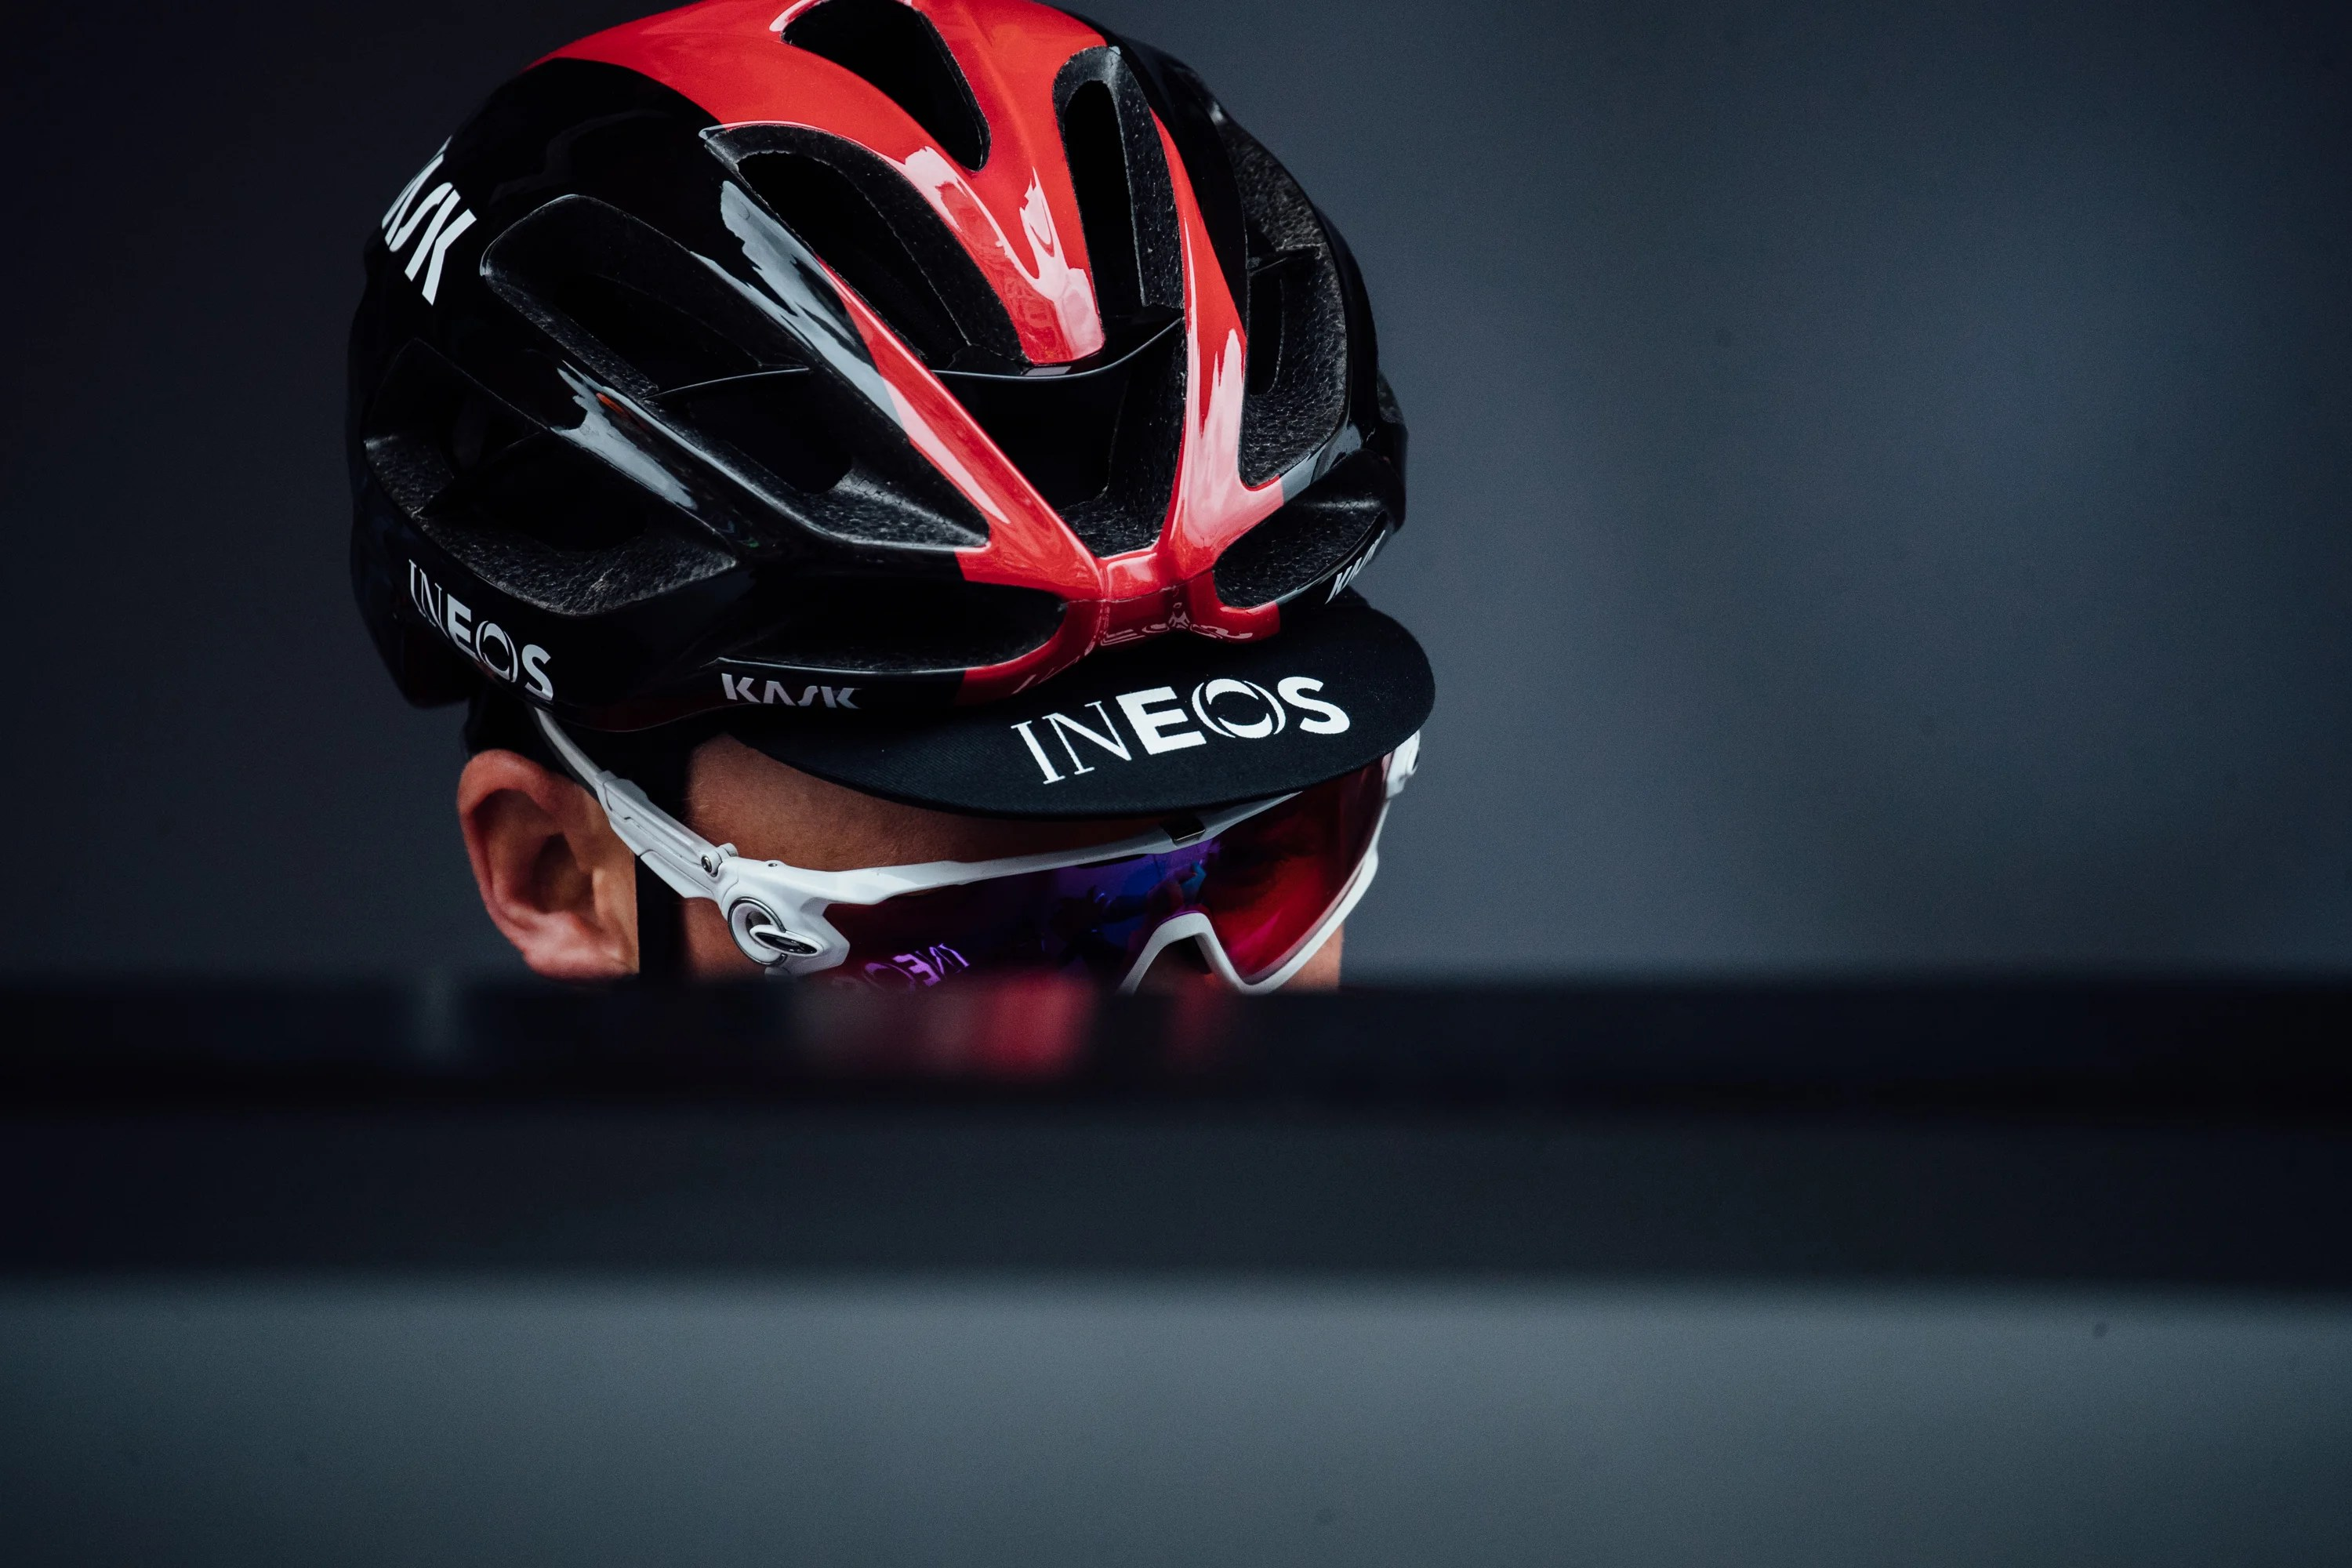 Team Ineos at the 2019 Tour de Yorkshire  Cyclist